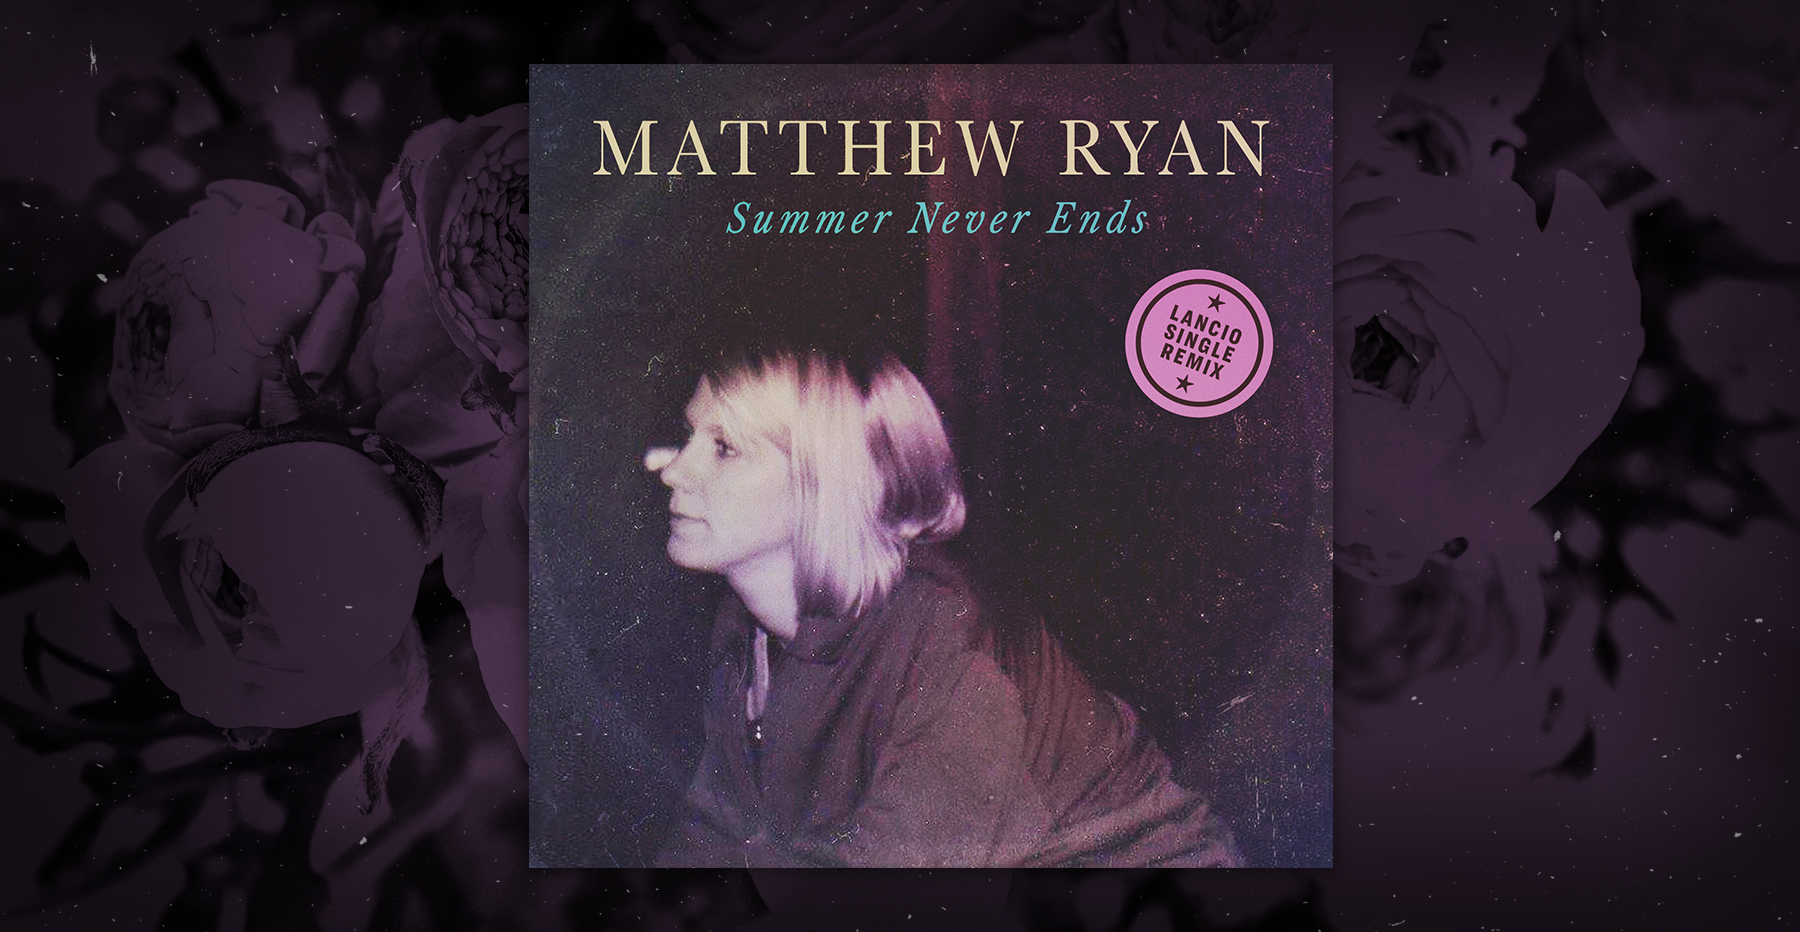 Matthew Ryan Summer Never Ends Spotify Single